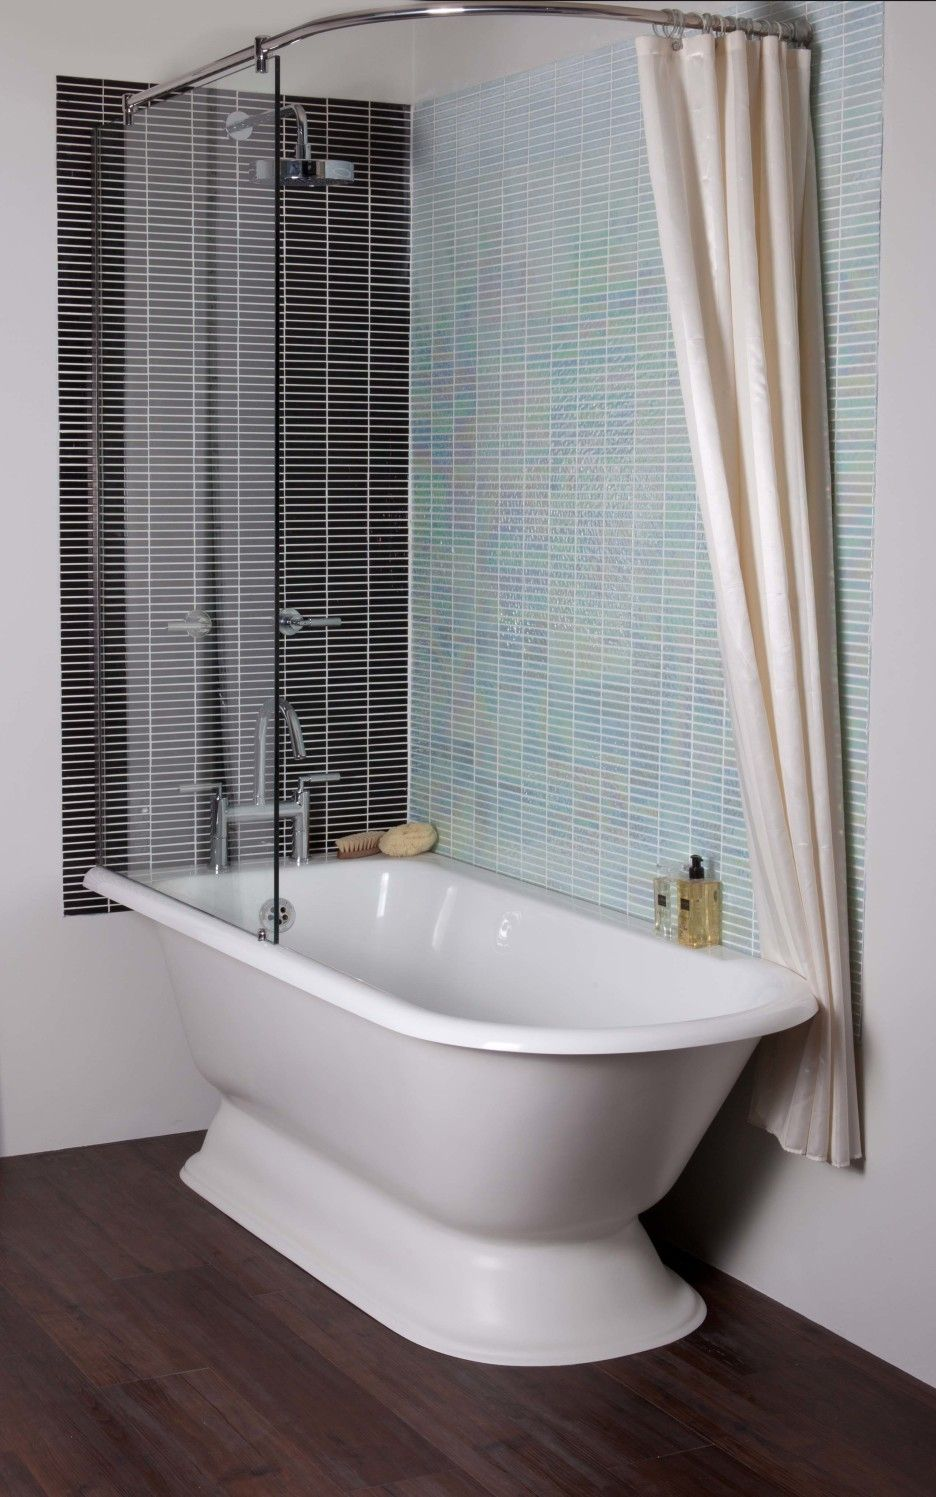 bathroom white clawfoot bathtub with glass wall partition and shower curtain plus glass mosaic